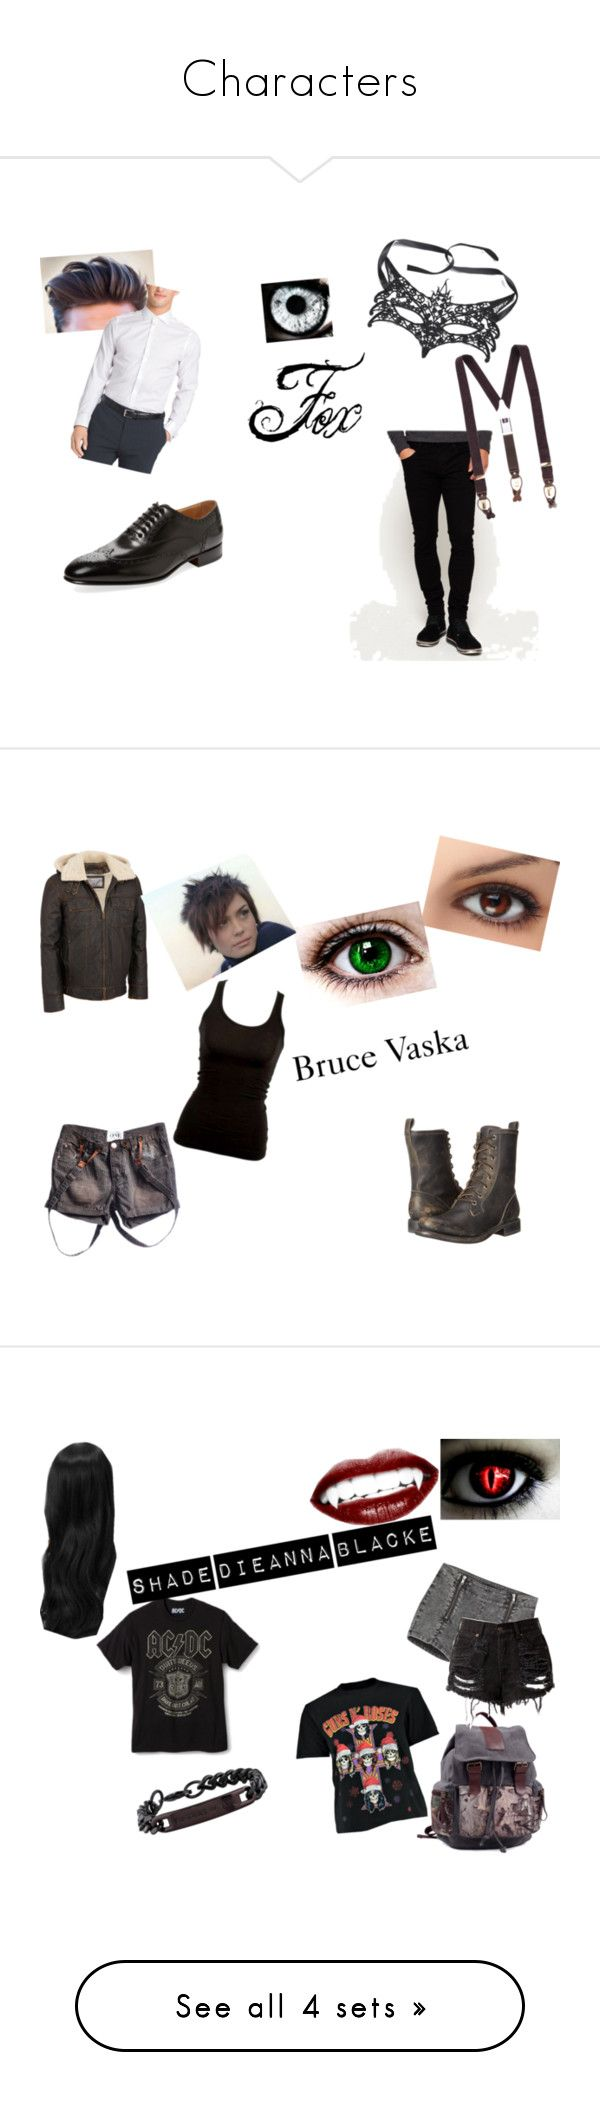 """""""Characters"""" by jundtl on Polyvore featuring Superdry, Albert Thurston, Calvin Klein, Romano Martegani, Wilsons Leather, Frye, The Kooples, Dasein, Boohoo and Thomas Wylde"""